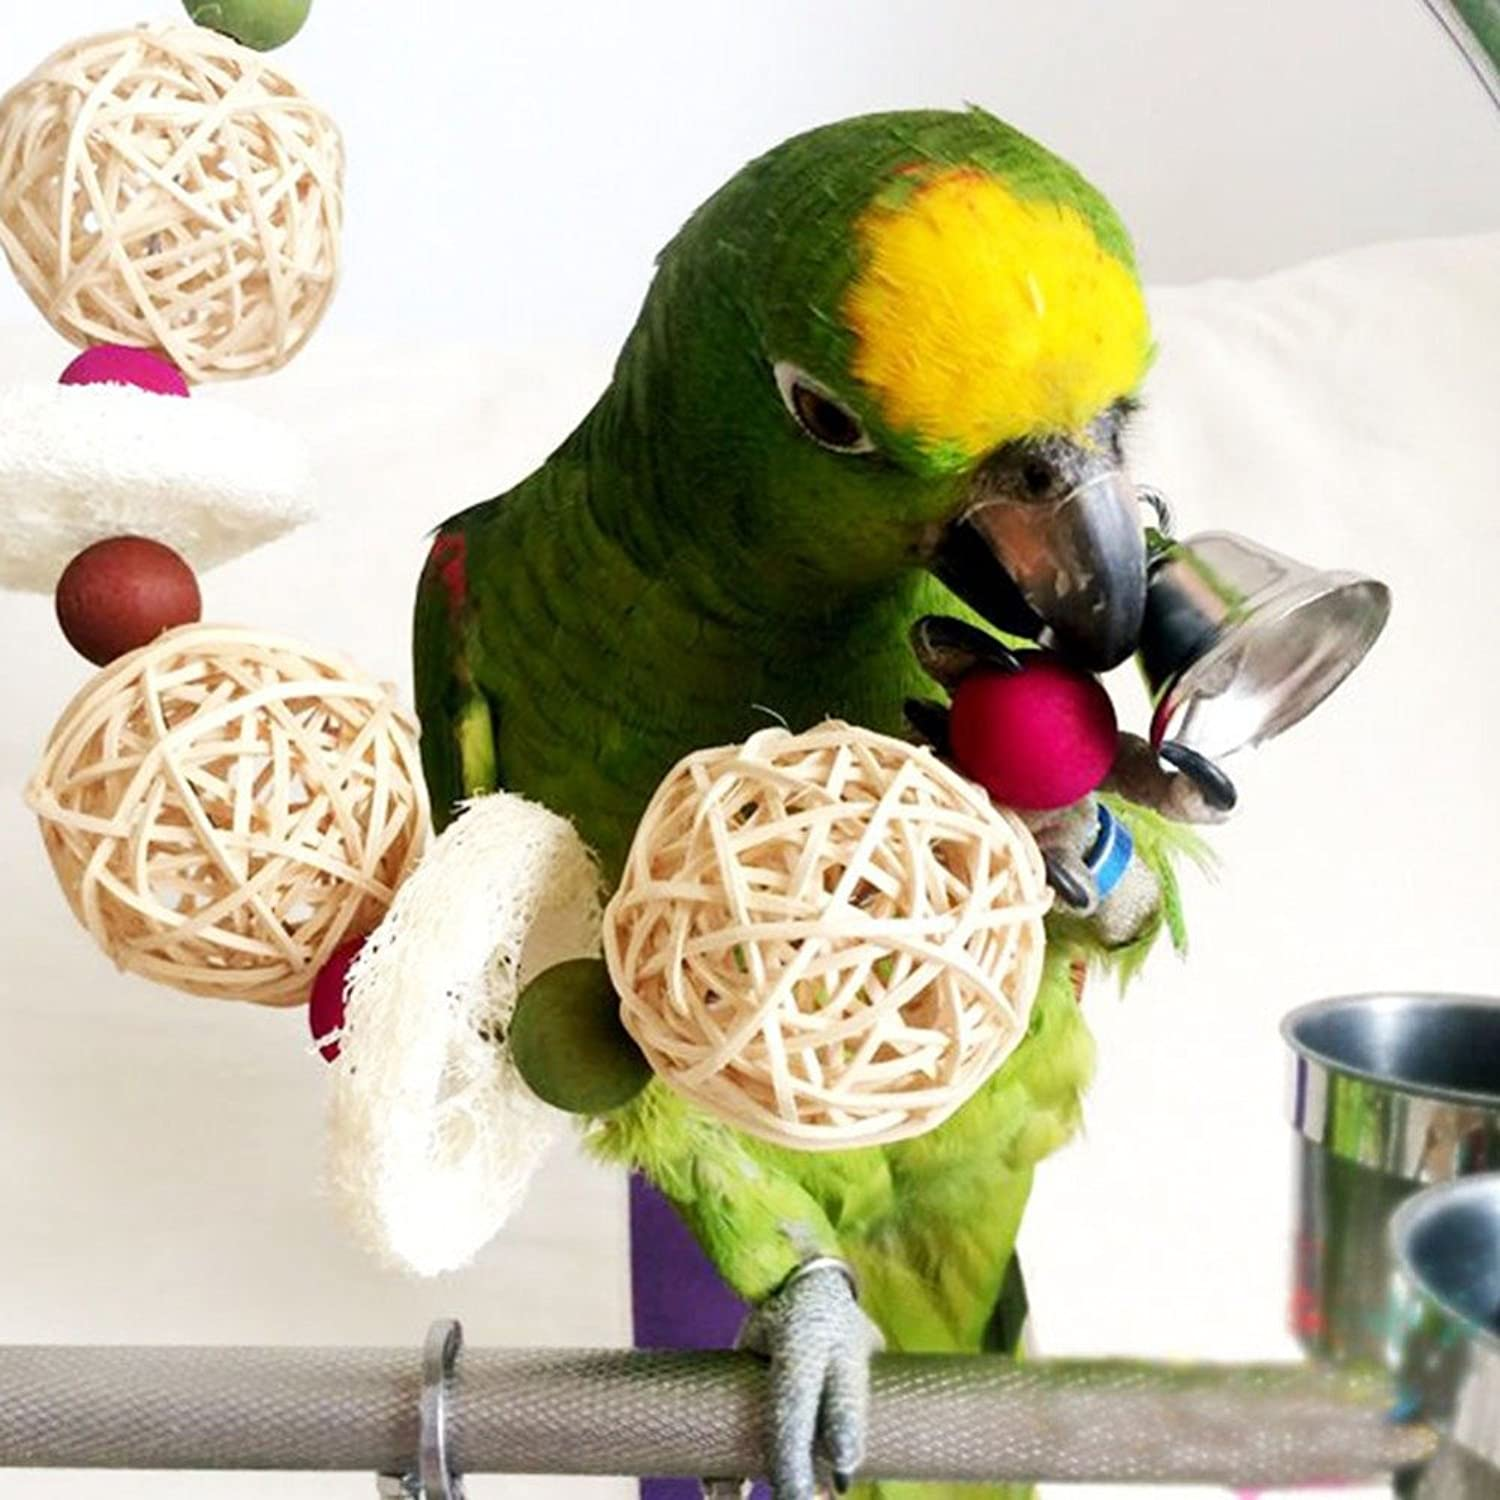 Sciotex(TM) Bird Cage Toys Kick Ball Sneaker Bird Toy Parred Cage Toys Decorative Bird Cages Parred Toys Bird Parred Supplies New